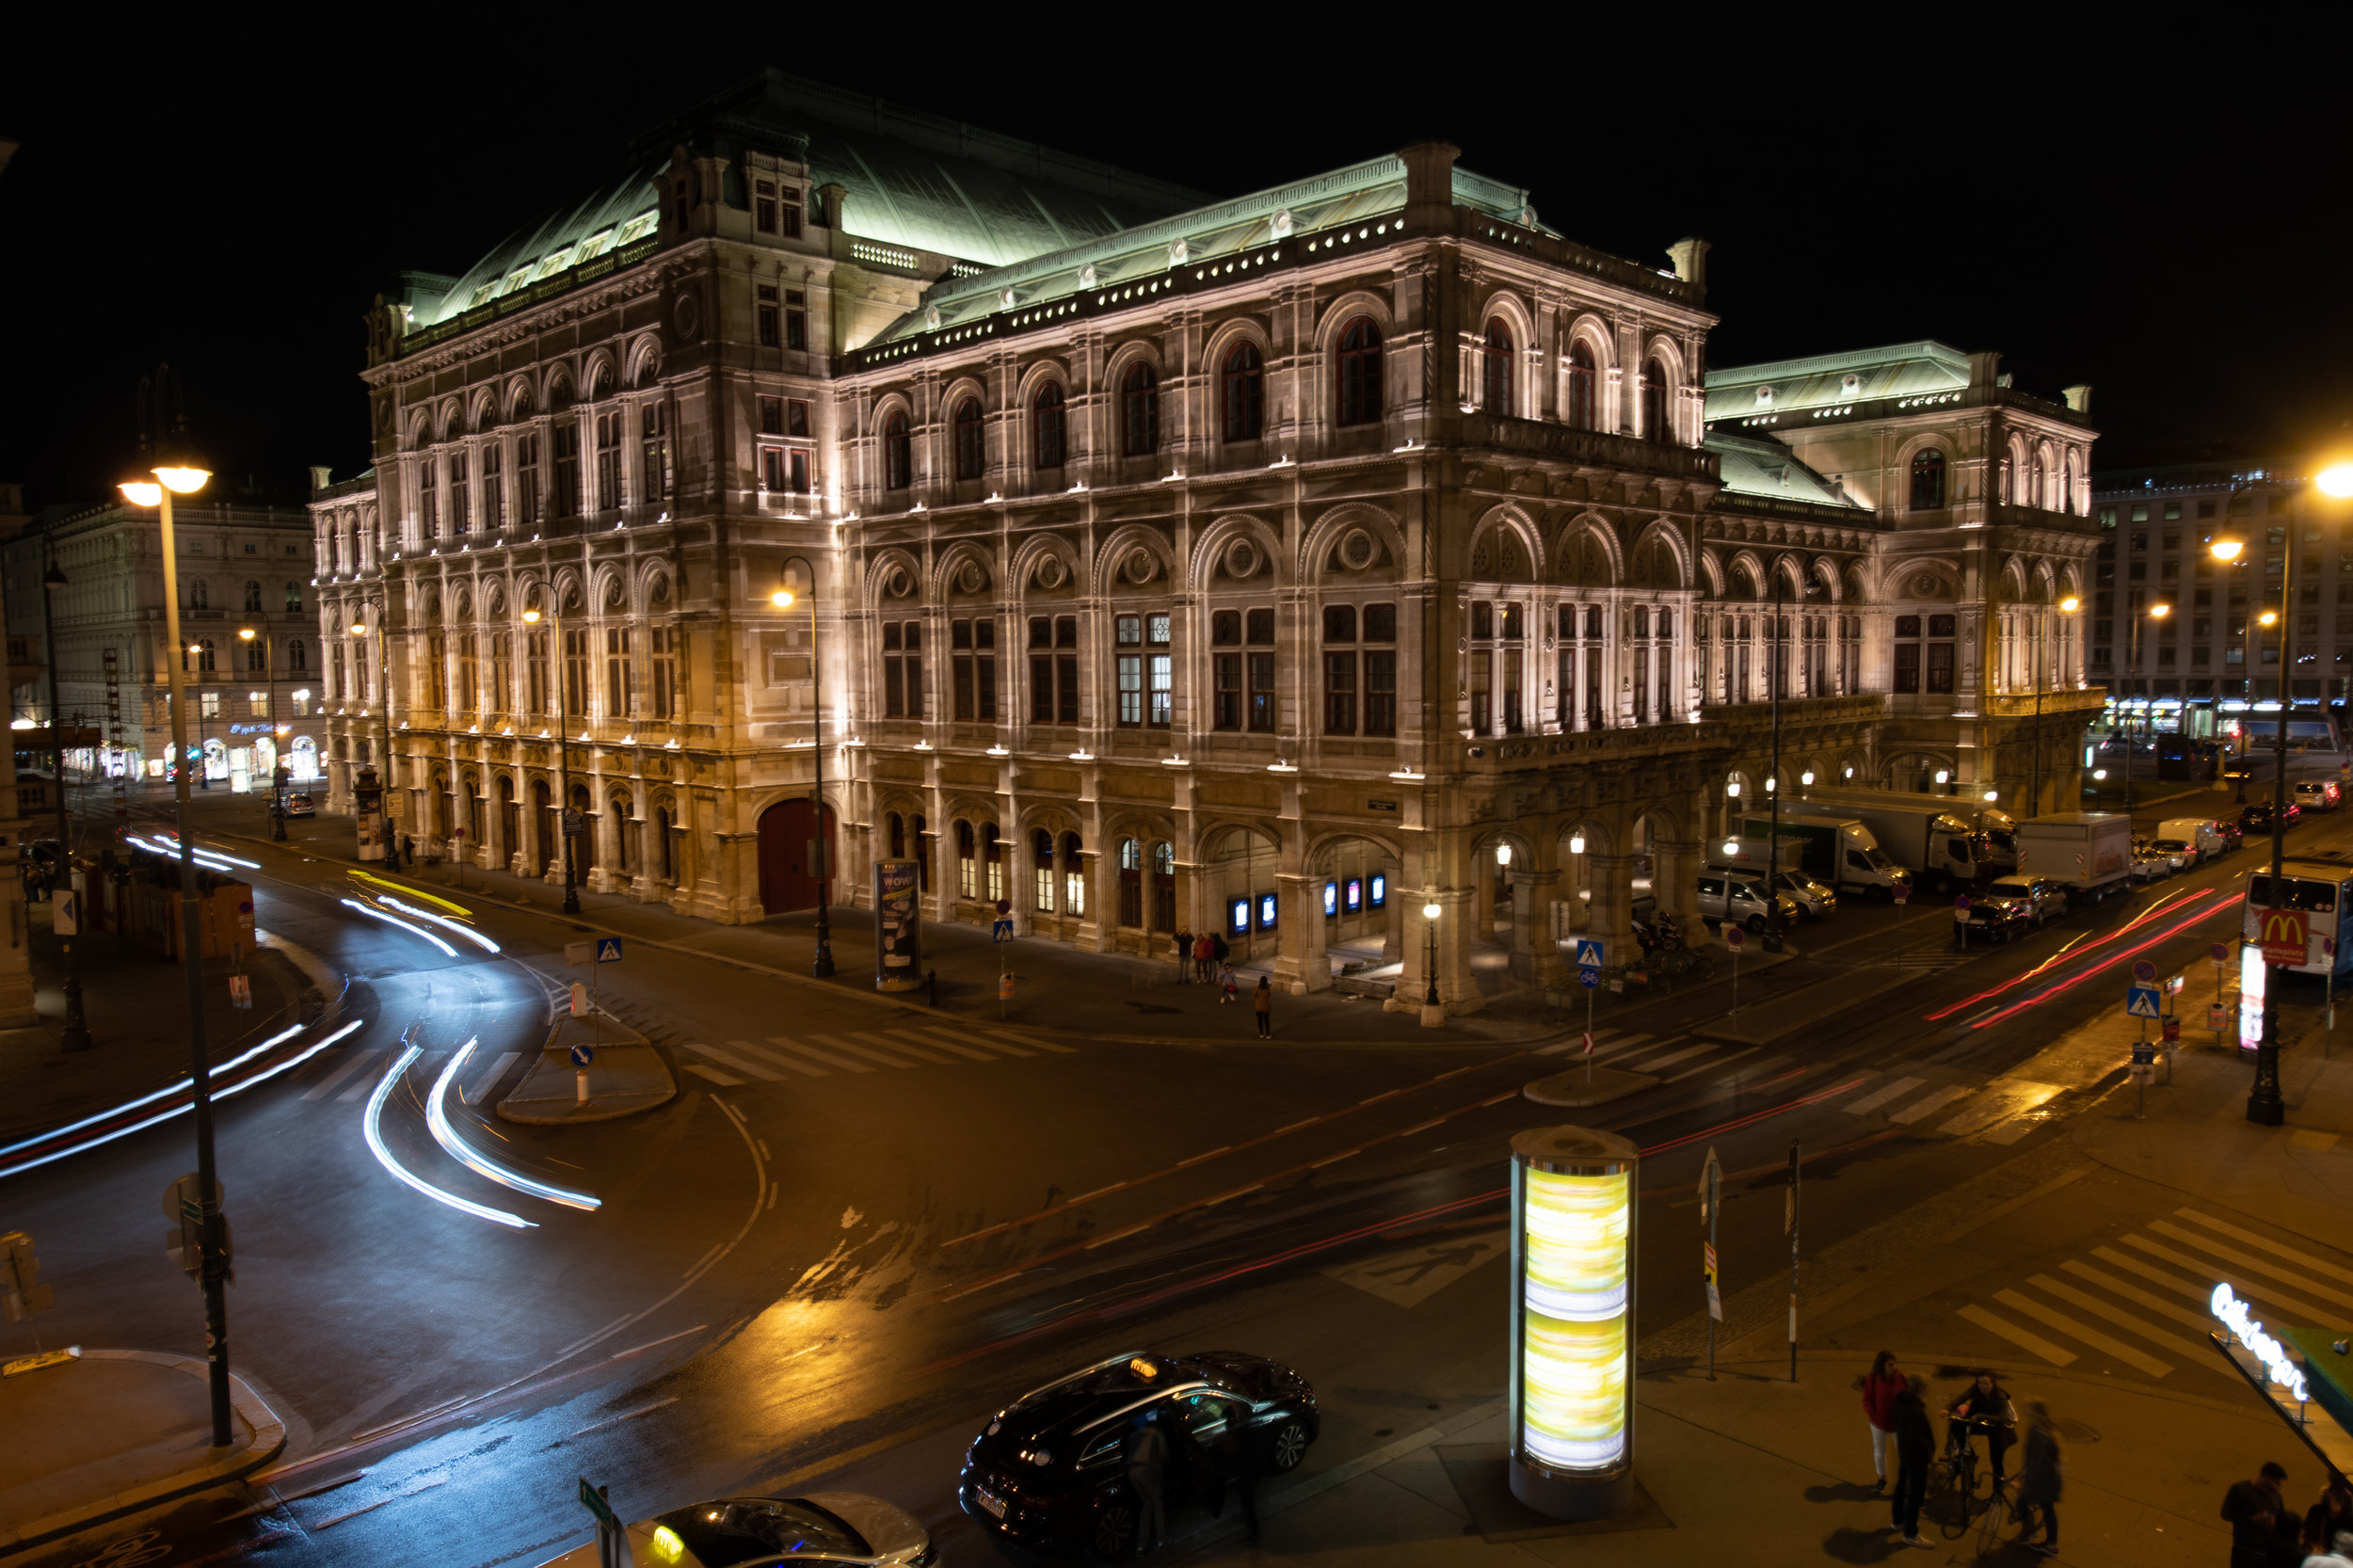 One of my favorite night photos, the  Vienna Operahouse